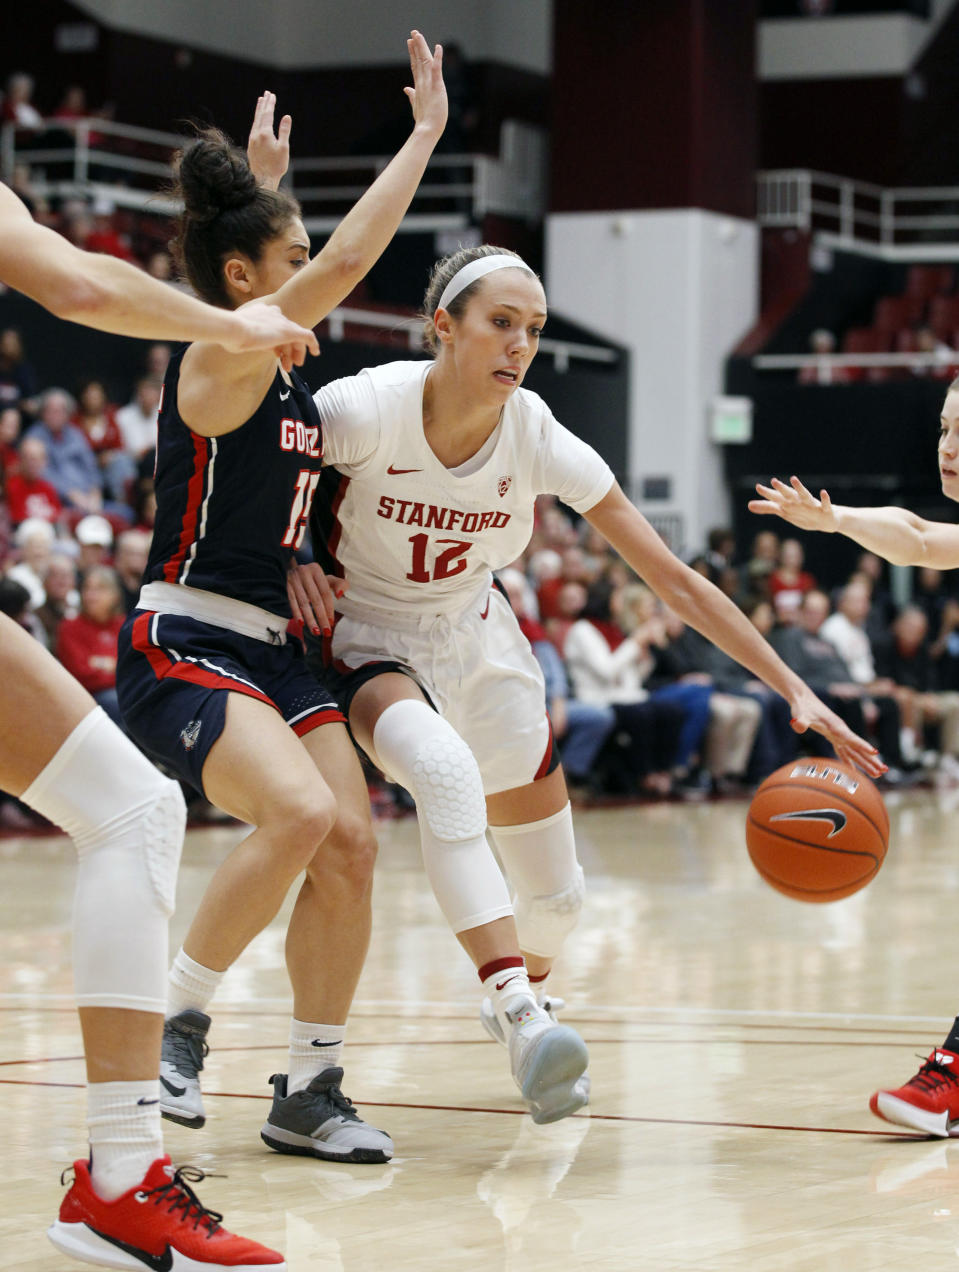 Stanford's Lexie Hull (12) drives for the basket as Gonzaga's Jessie Loera defends during the first half of an NCAA college basketball game Sunday, Nov. 17, 2019, in Stanford, Calif. (AP Photo/George Nikitin)